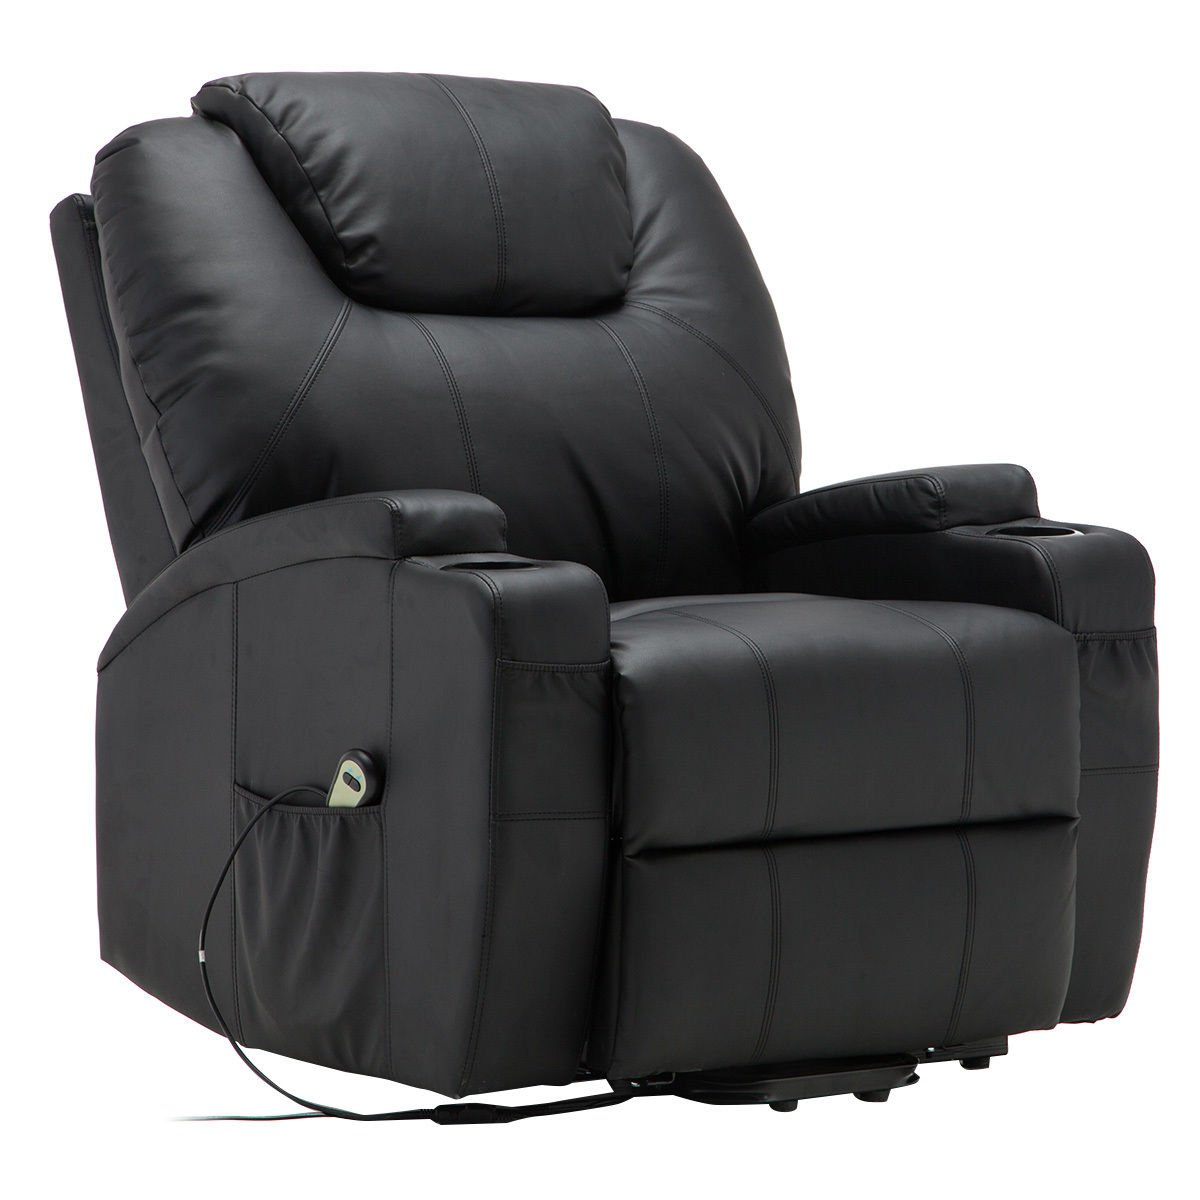 COLIBROX–Electric Lift Power Recliner Chair Heated Massage Sofa Lounge w Remote Control. power recliner hand control. lift chair hand control. comfortlift chair. electric recliner remote control.